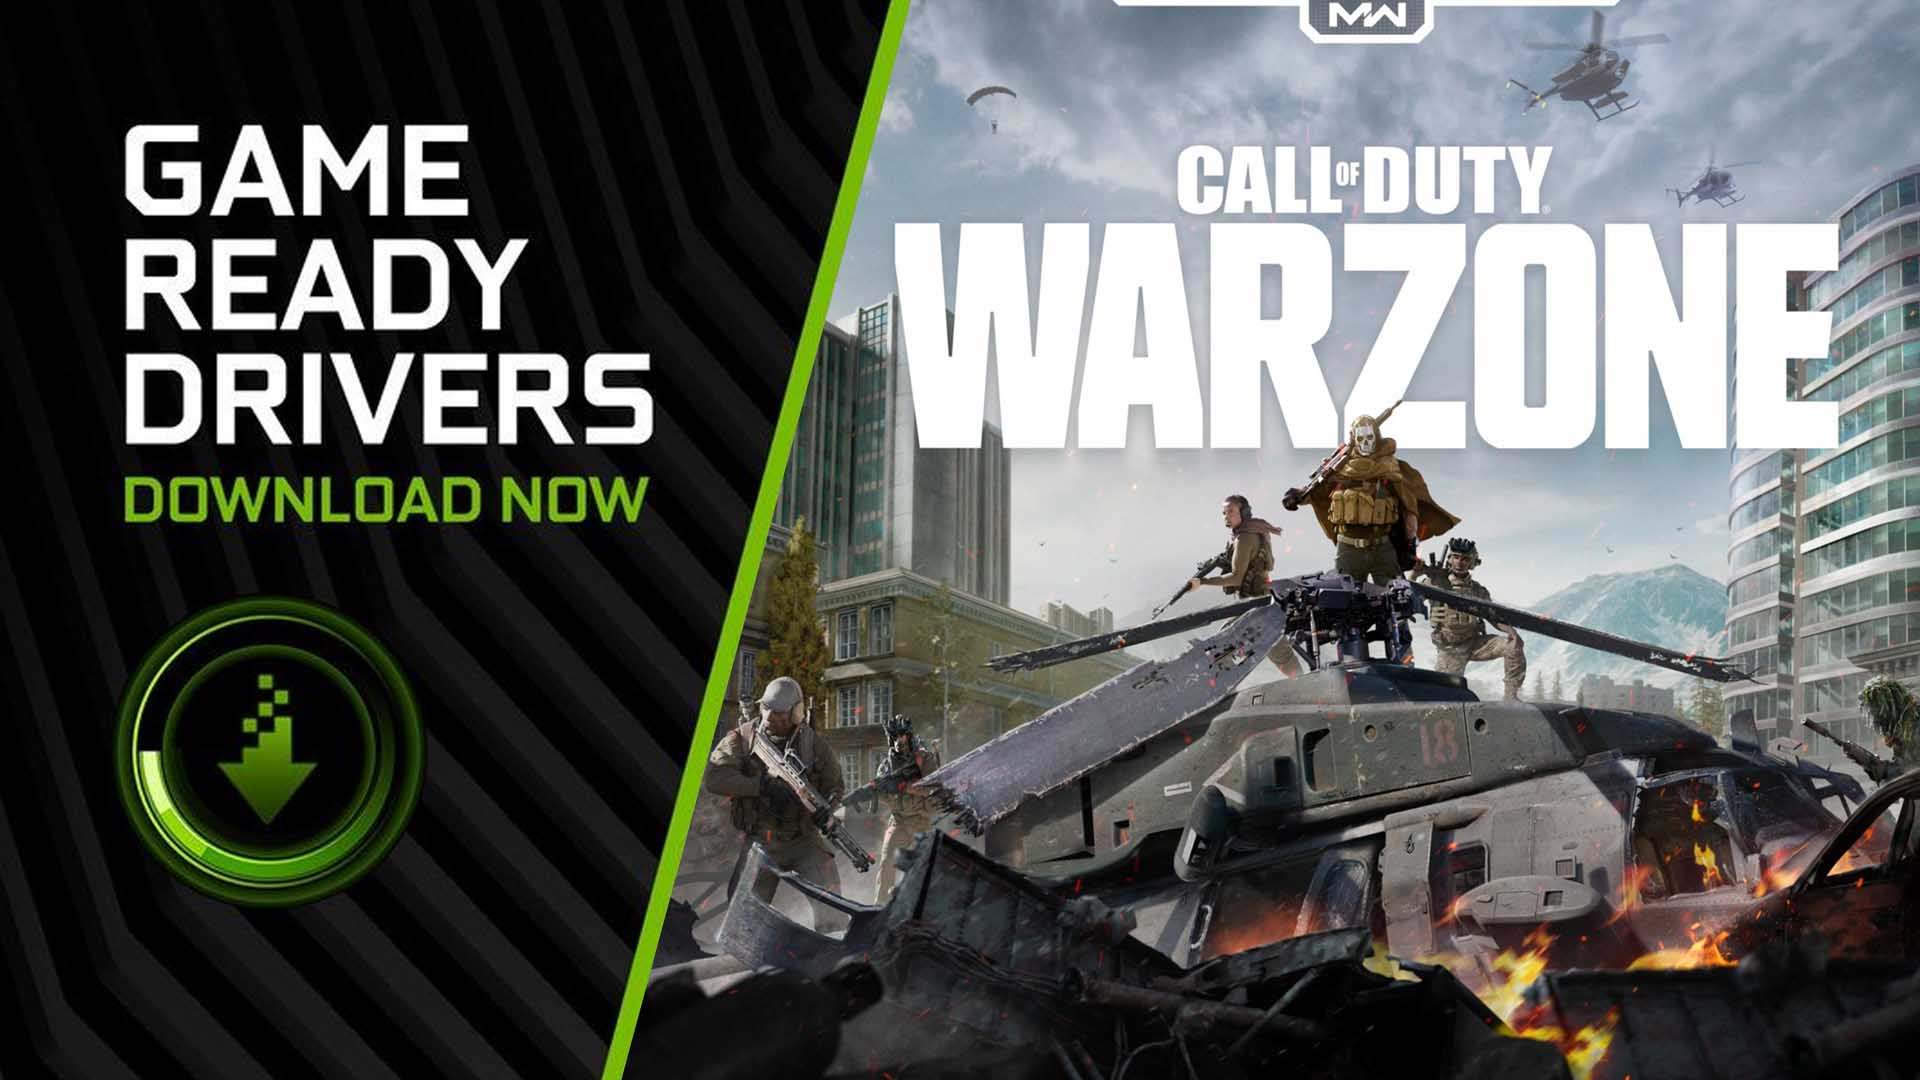 Geforce Releases Call Of Duty Warzone Game Ready Driver